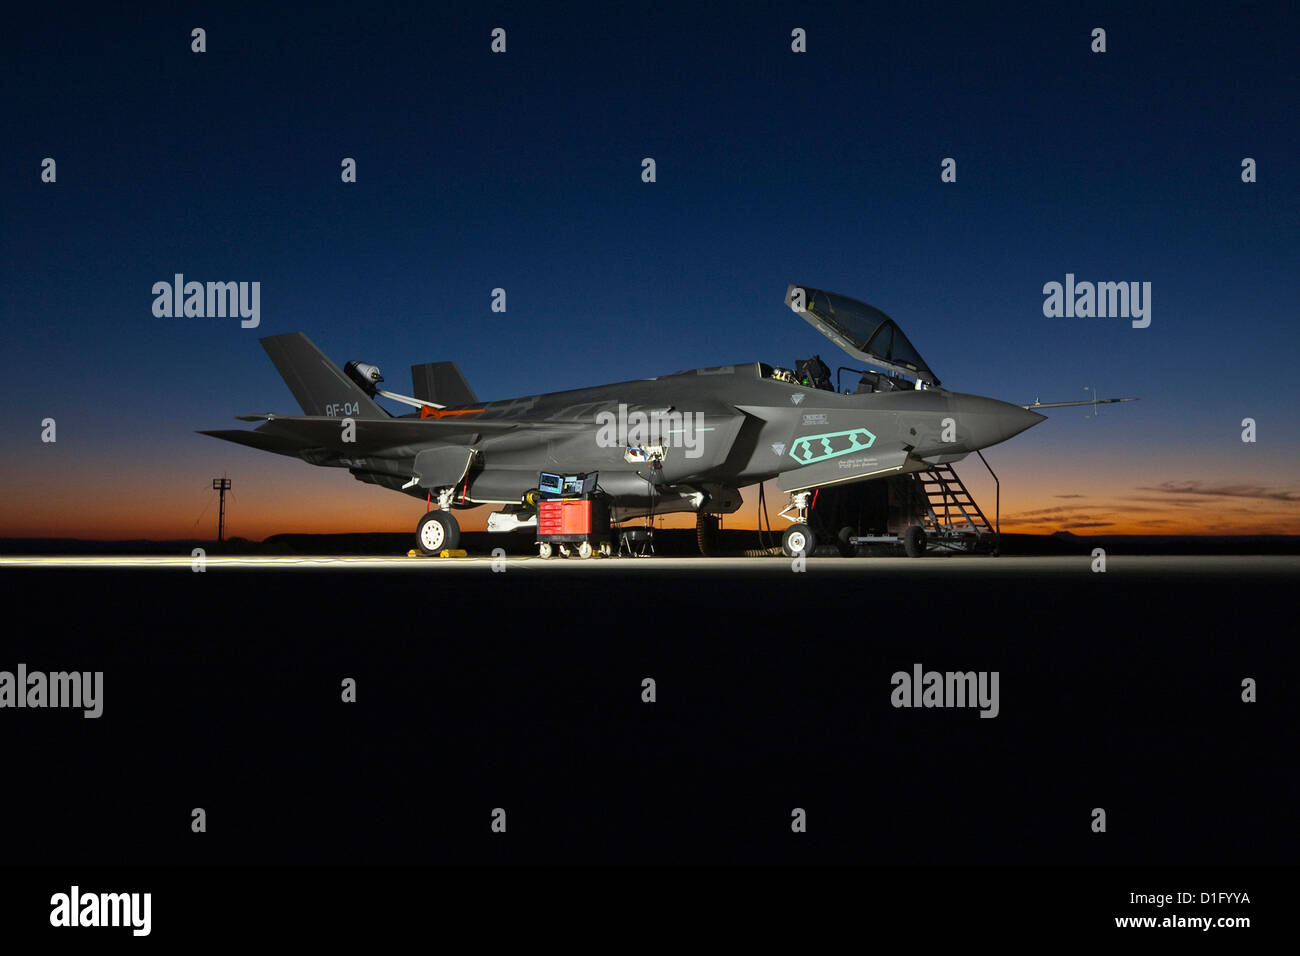 US Air Force F-35 Joint Strike Fighter during ground tests at night October 20, 2012 at Edwards Air Force Base, - Stock Image